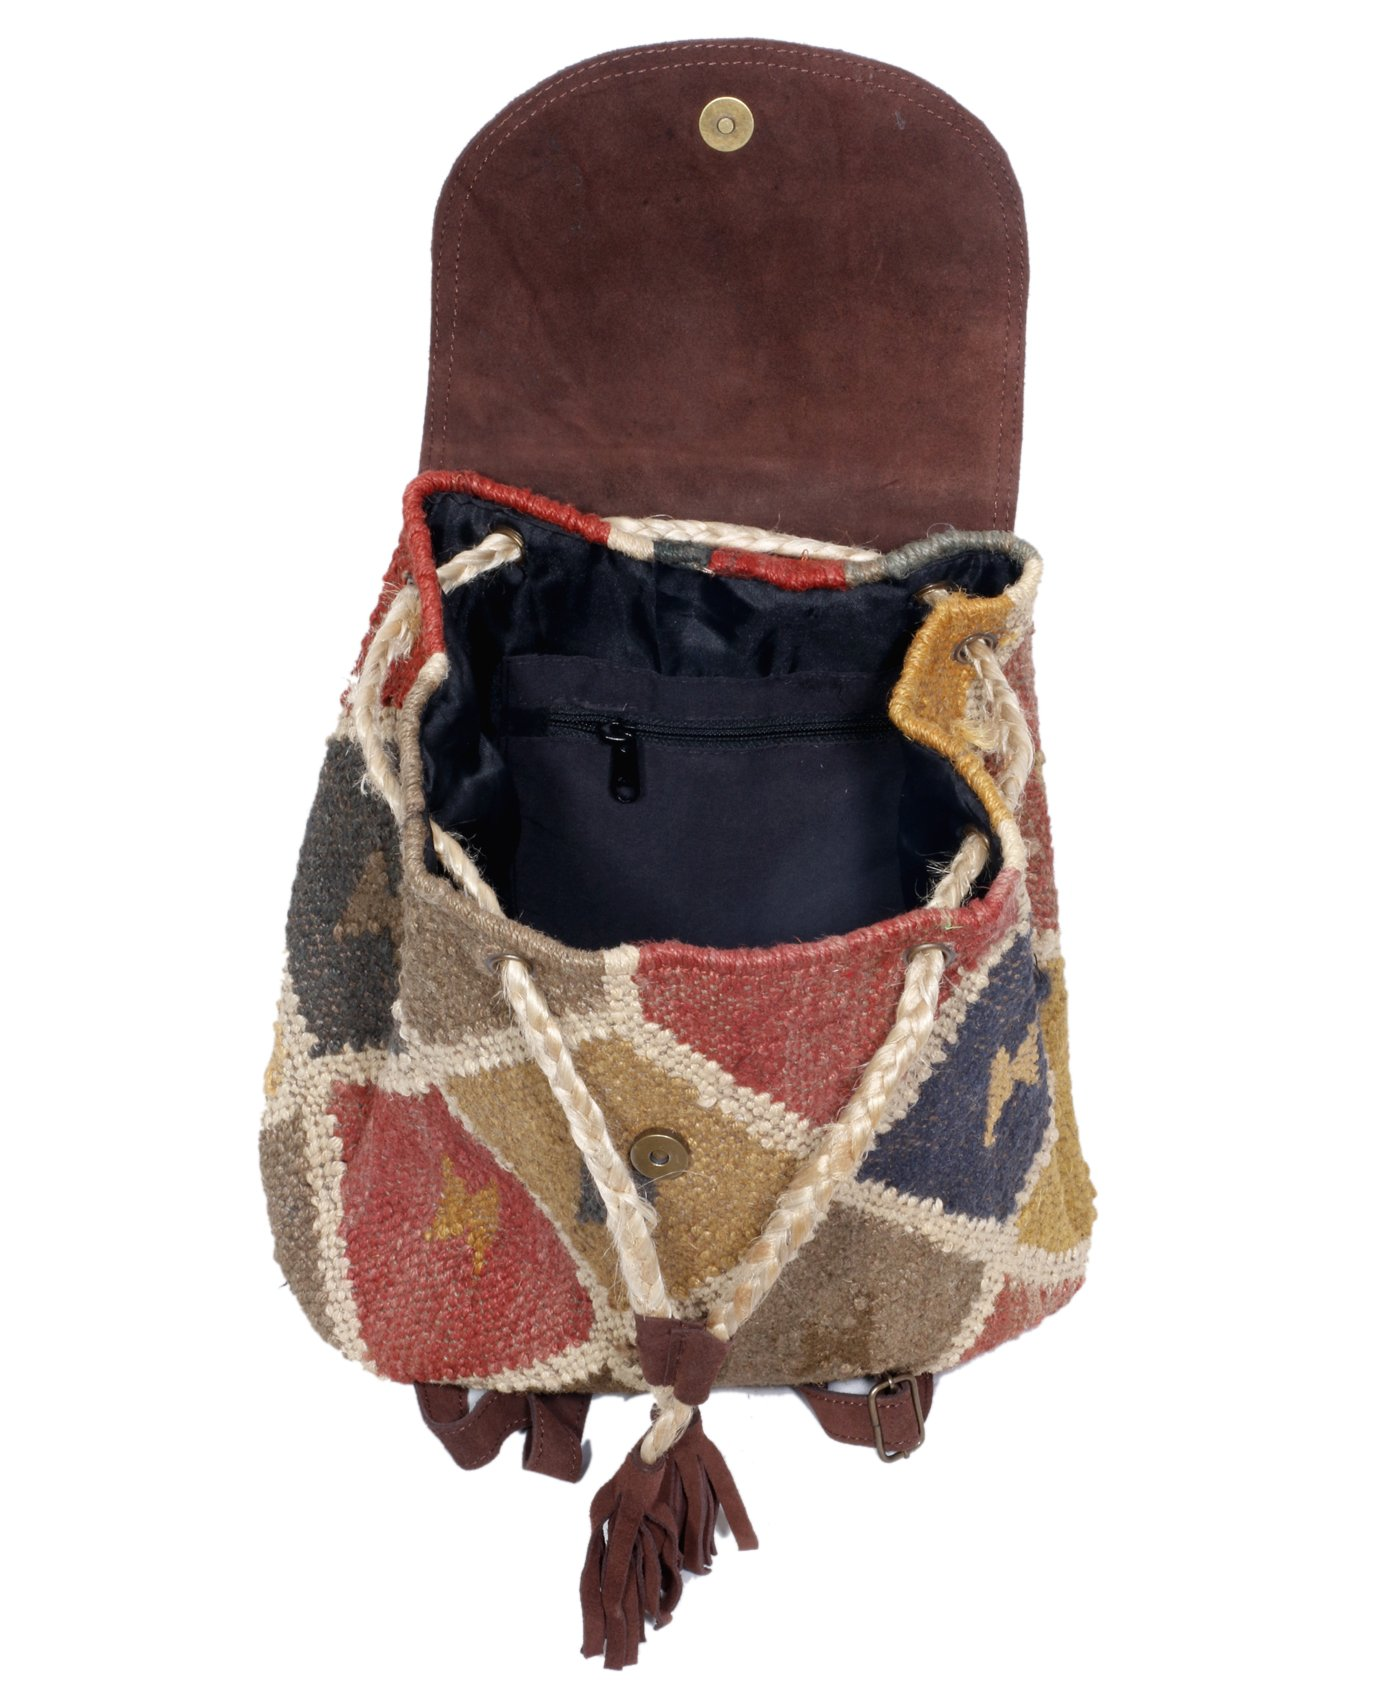 Indistar Women's Vintage Handmade Ethnic Kilim and Leather Back Pack Bag by Indistar (Image #6)